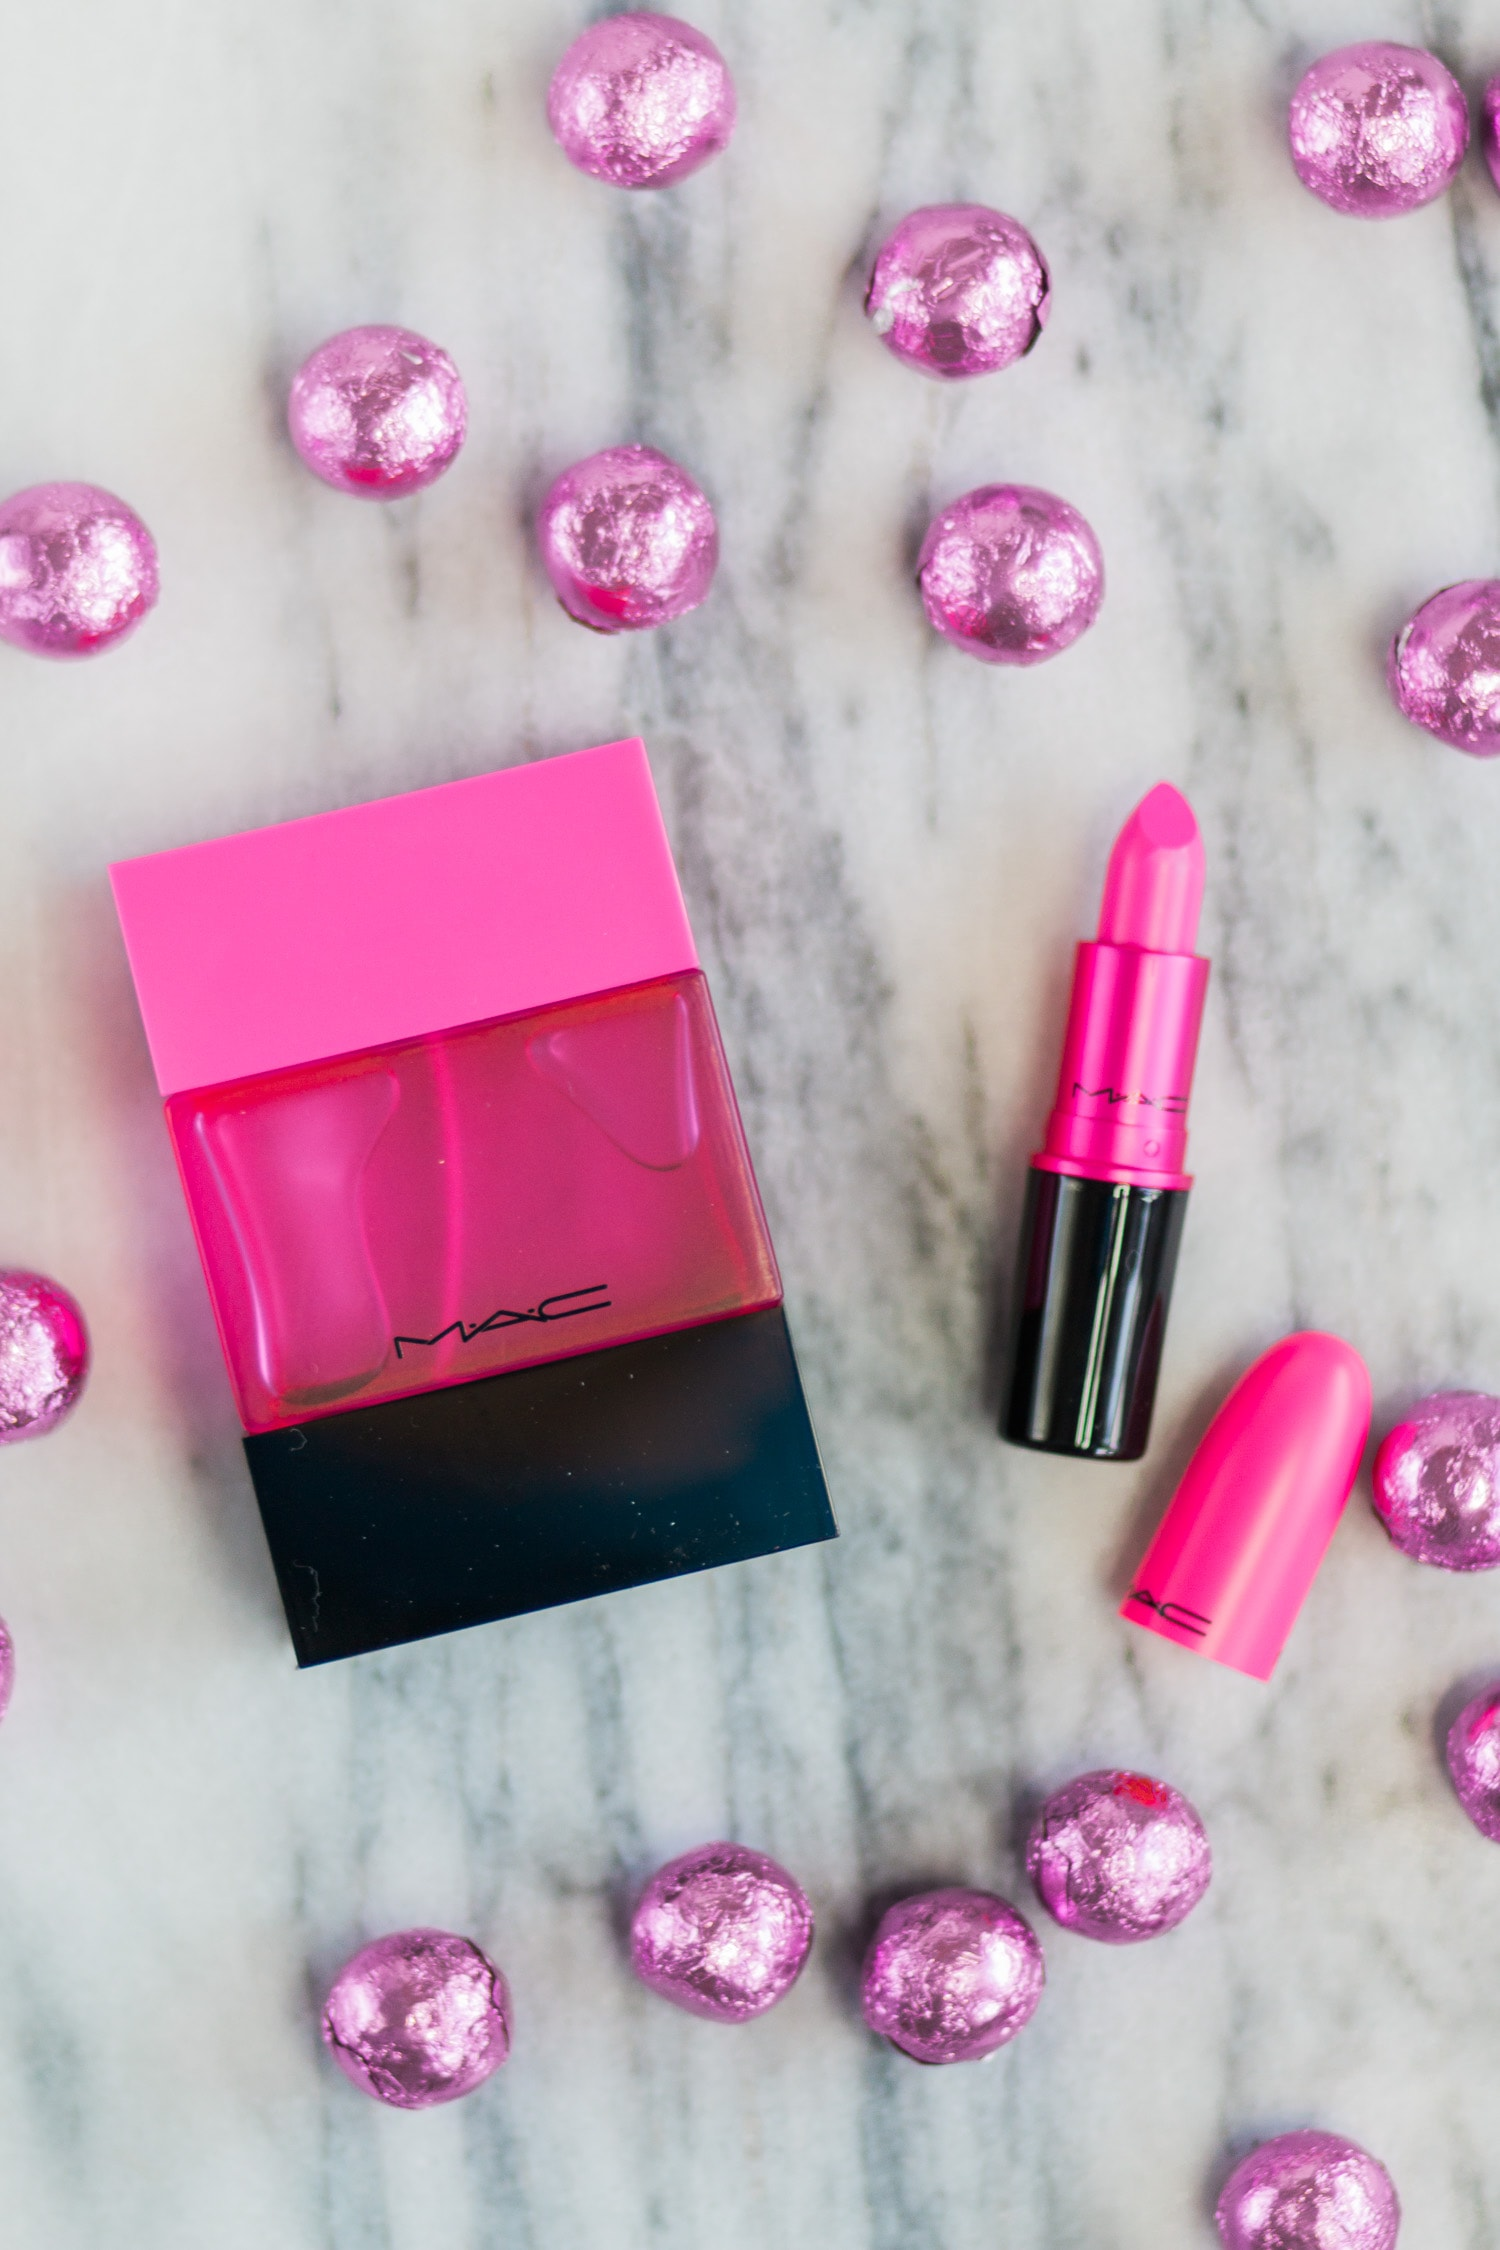 A full review of the MAC Shadescents Candy Yum Yum perfume and lipstick by Orlando, Florida, beauty blogger Ashley Brooke Nicholas